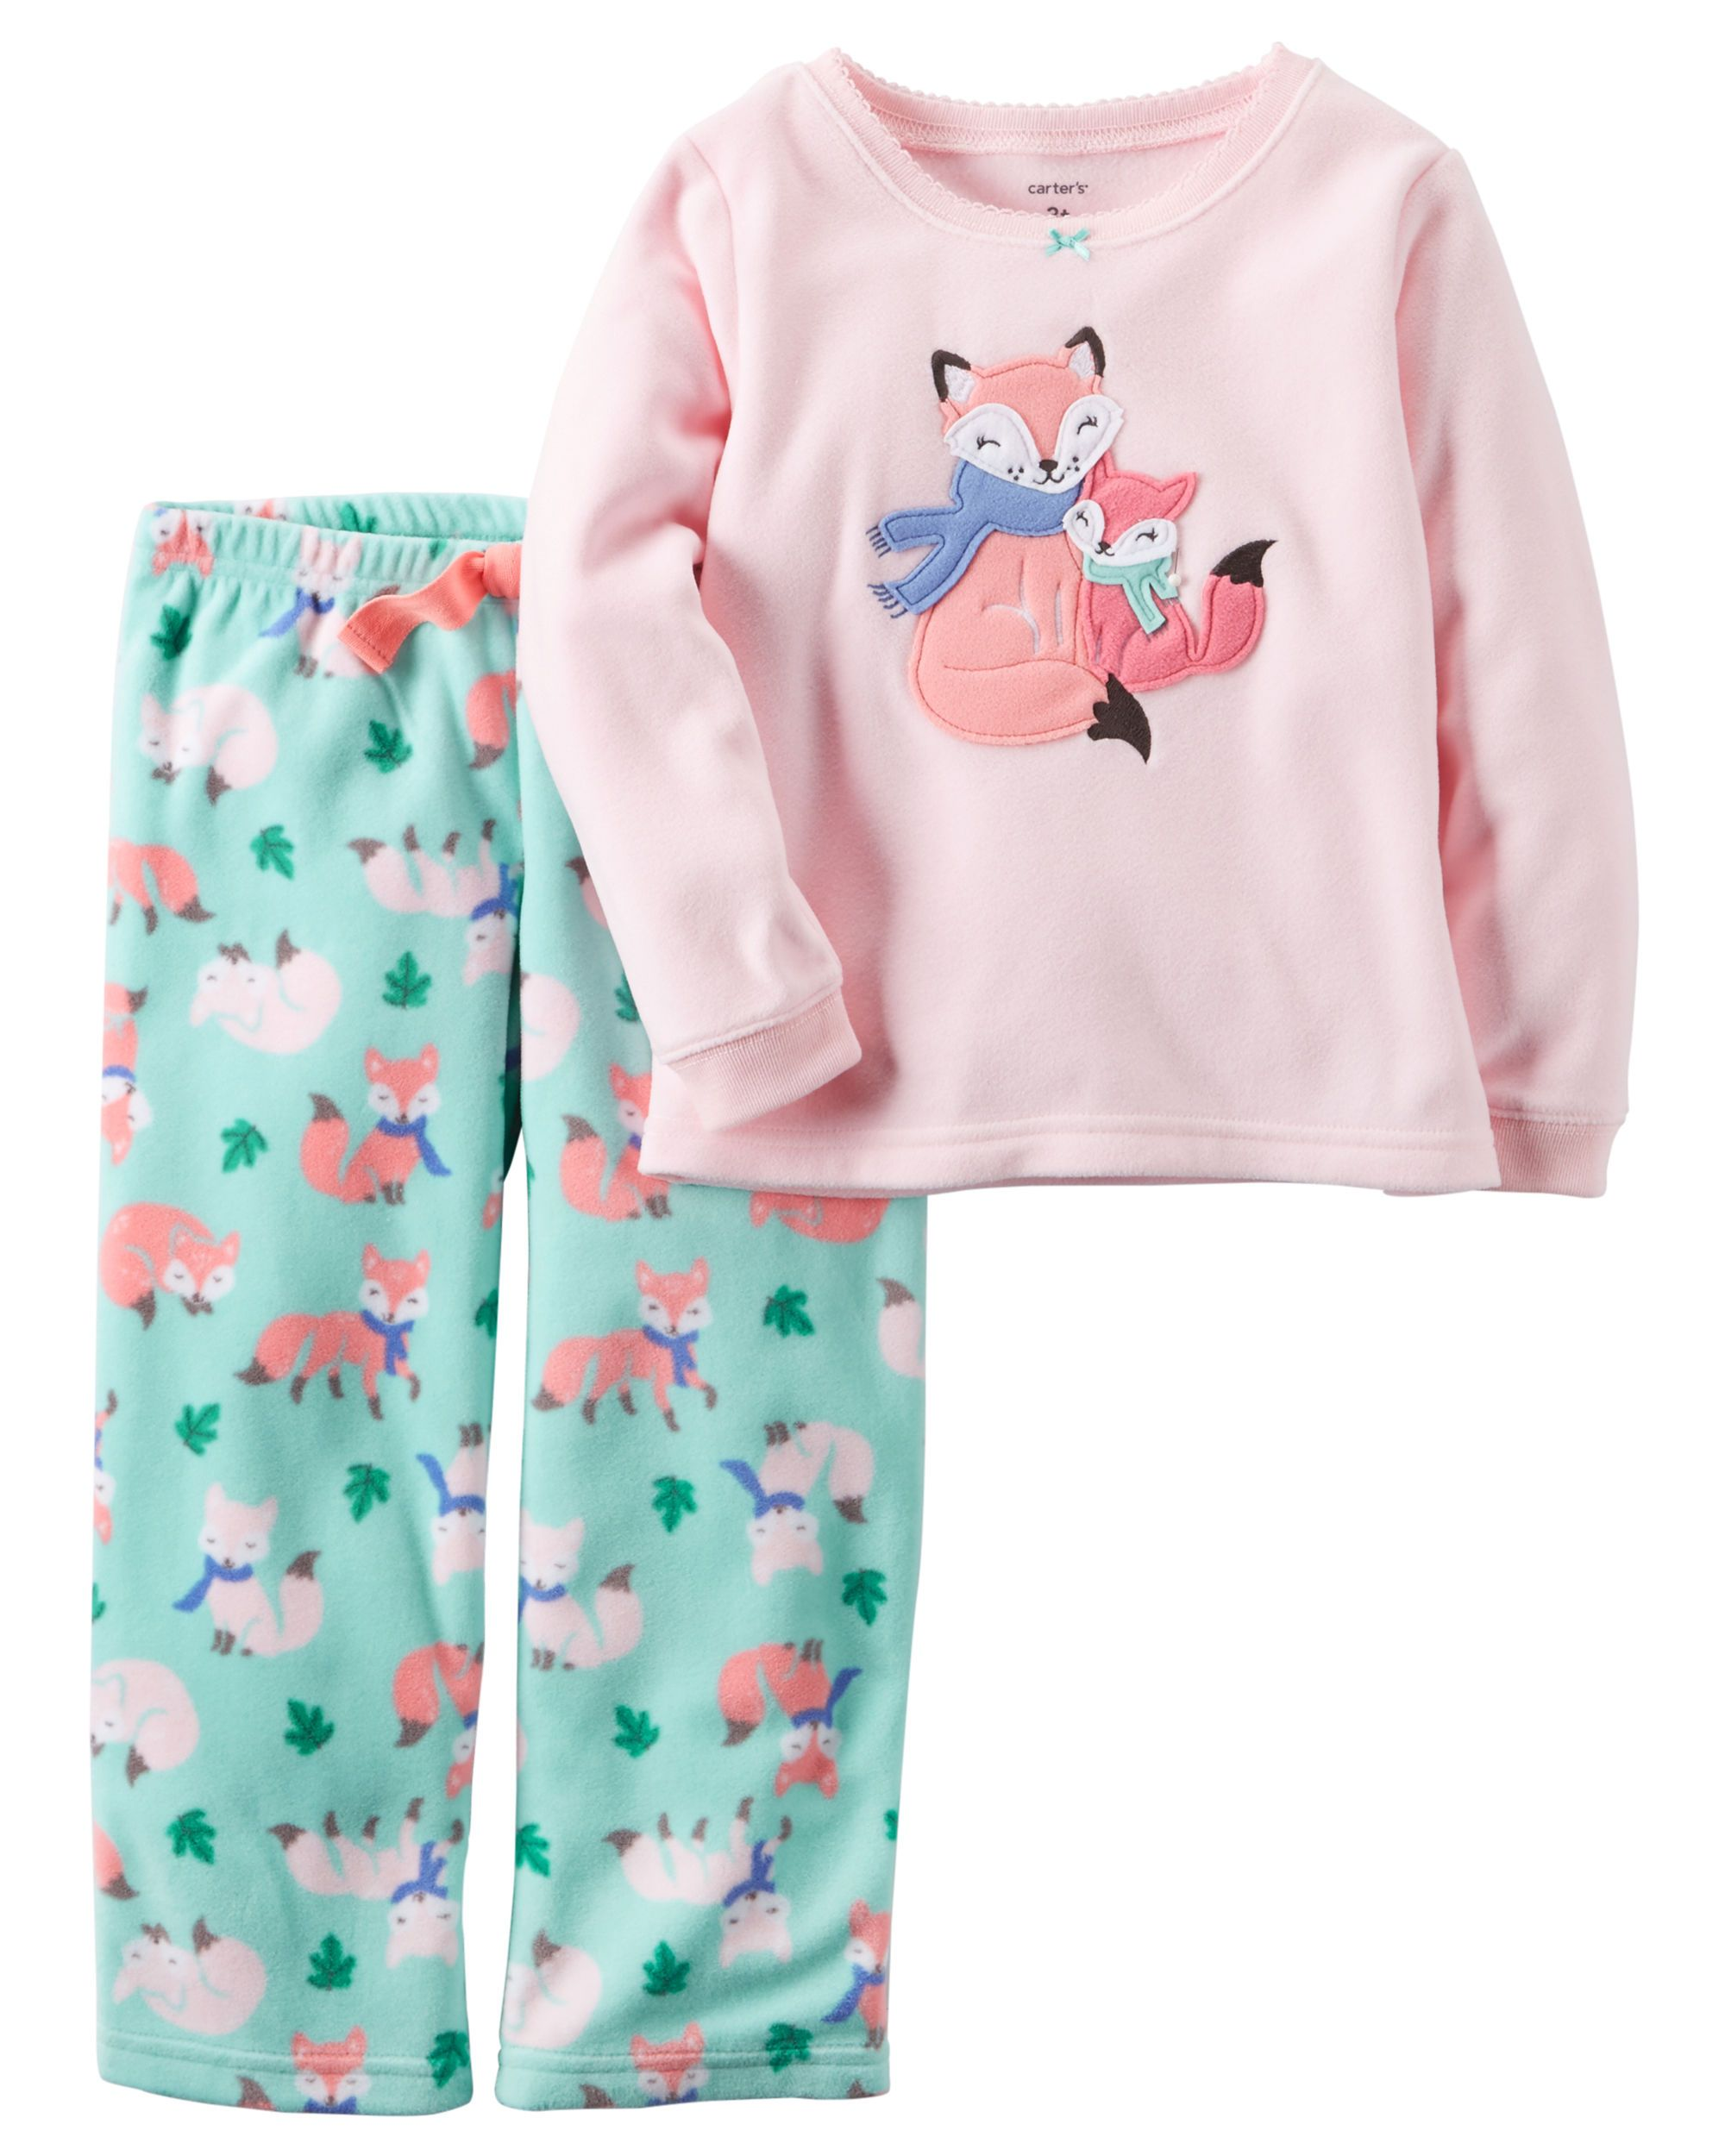 6eb2ddae3 Toddler Girl 2-Piece Fleece PJs from Carters.com. Shop clothing ...